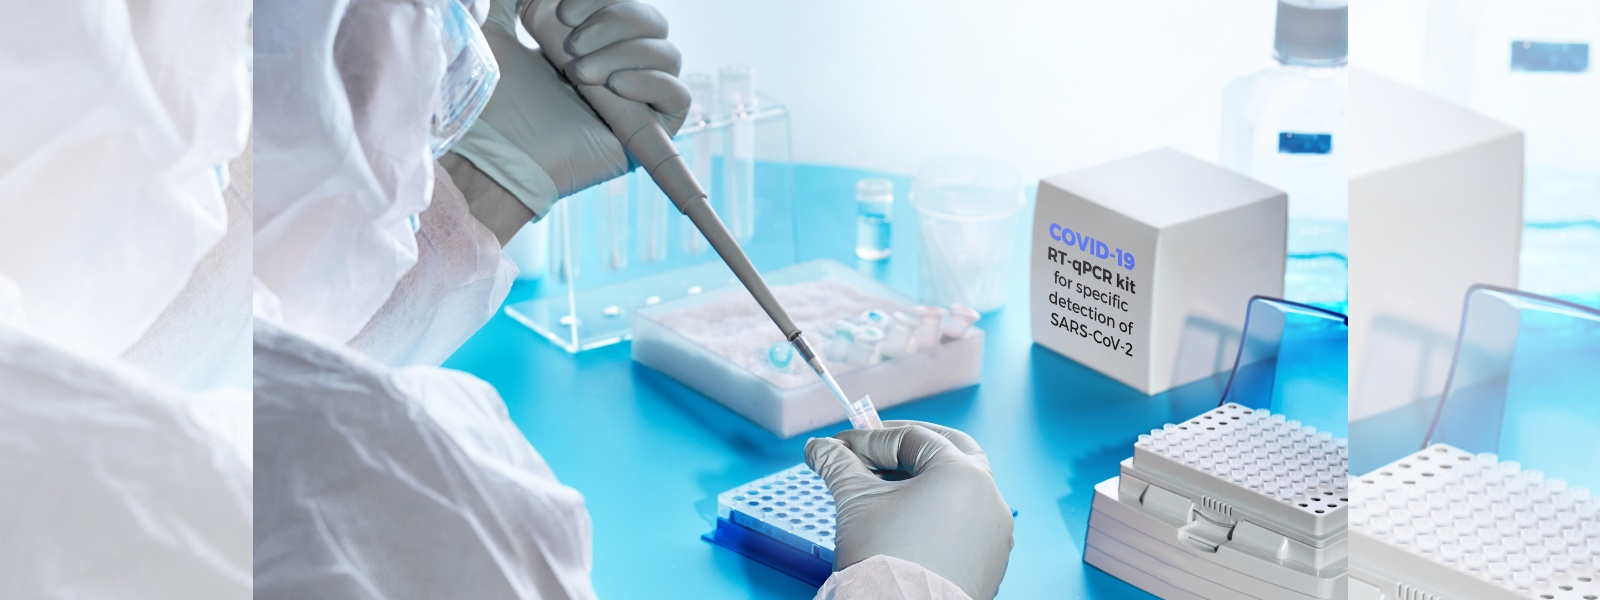 64 tested positive in Colombo following more than 3,000 PCR tests conducted during past 6 weeks